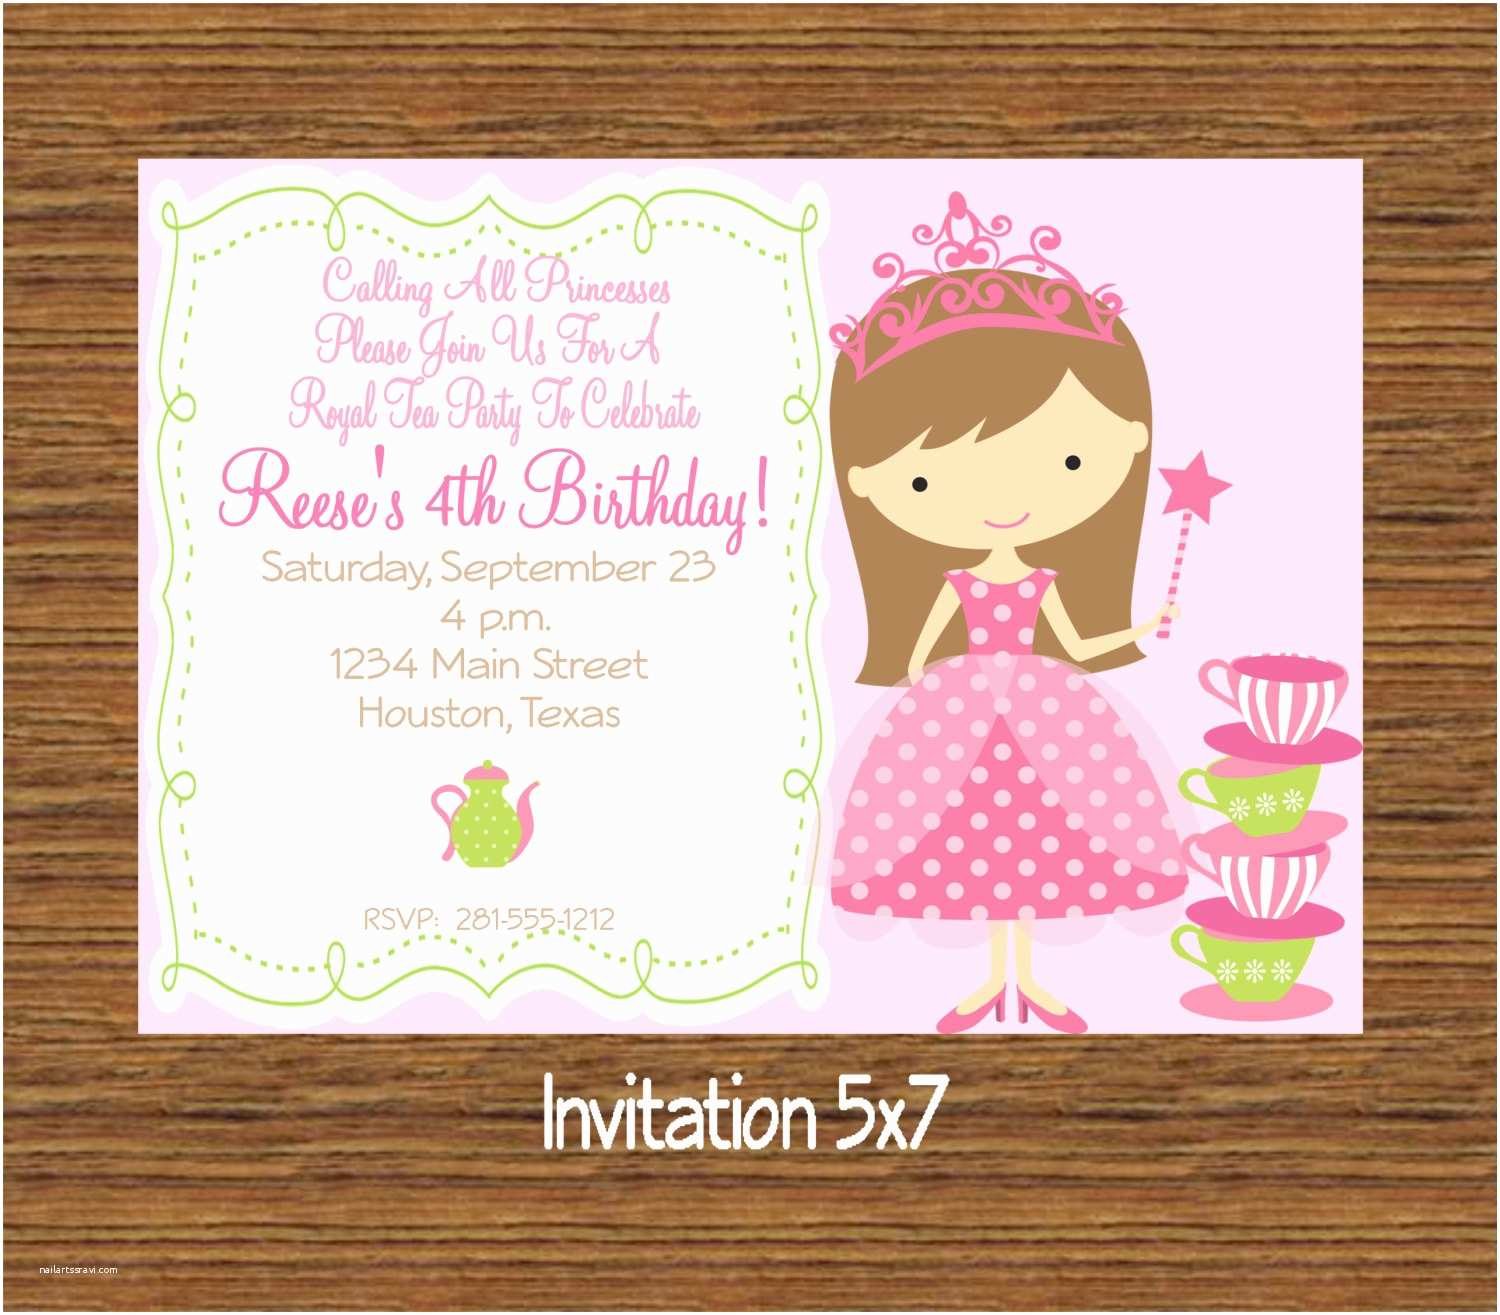 Custom Birthday Invitations Kitchen Party Invitation Cards Design [peenmedia]